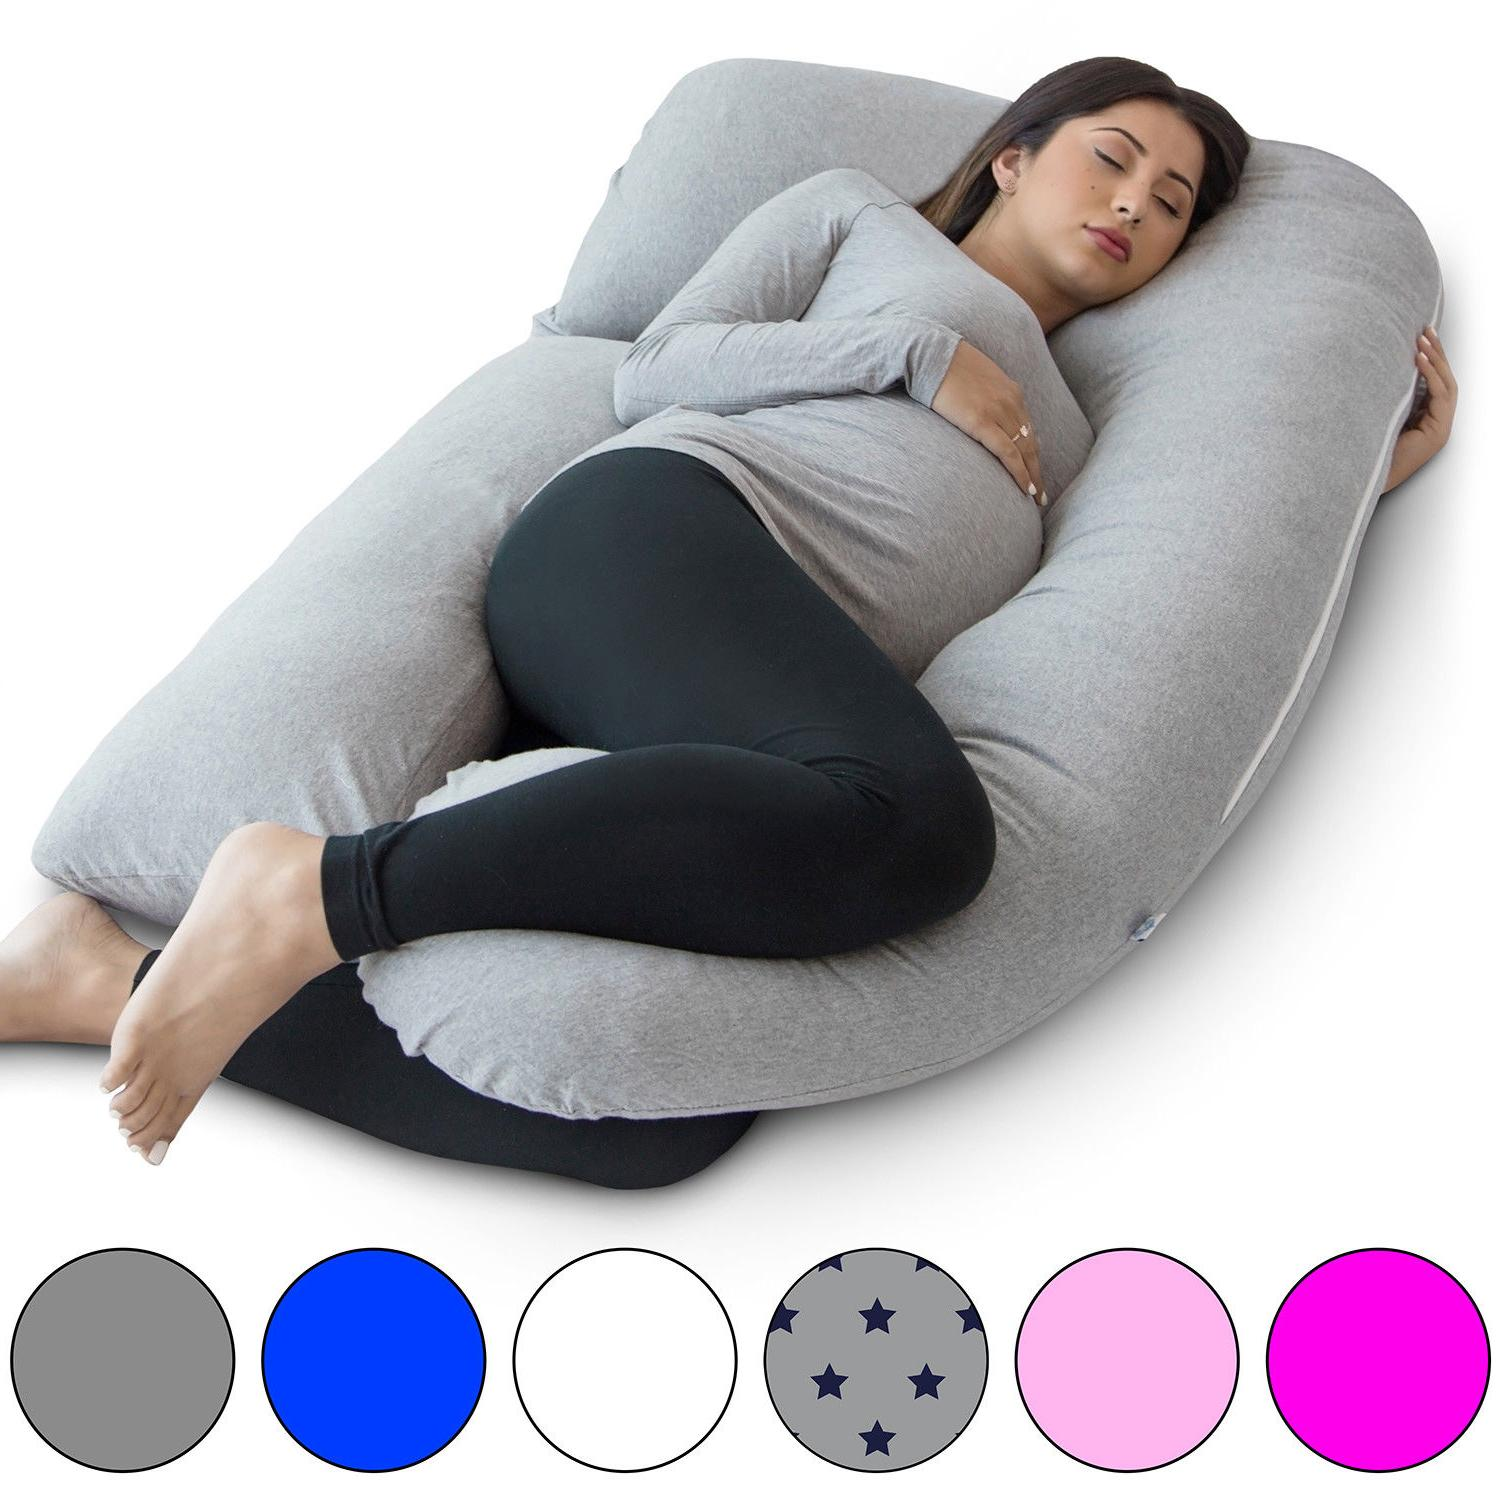 u shape full body pregnancy pillow detachable